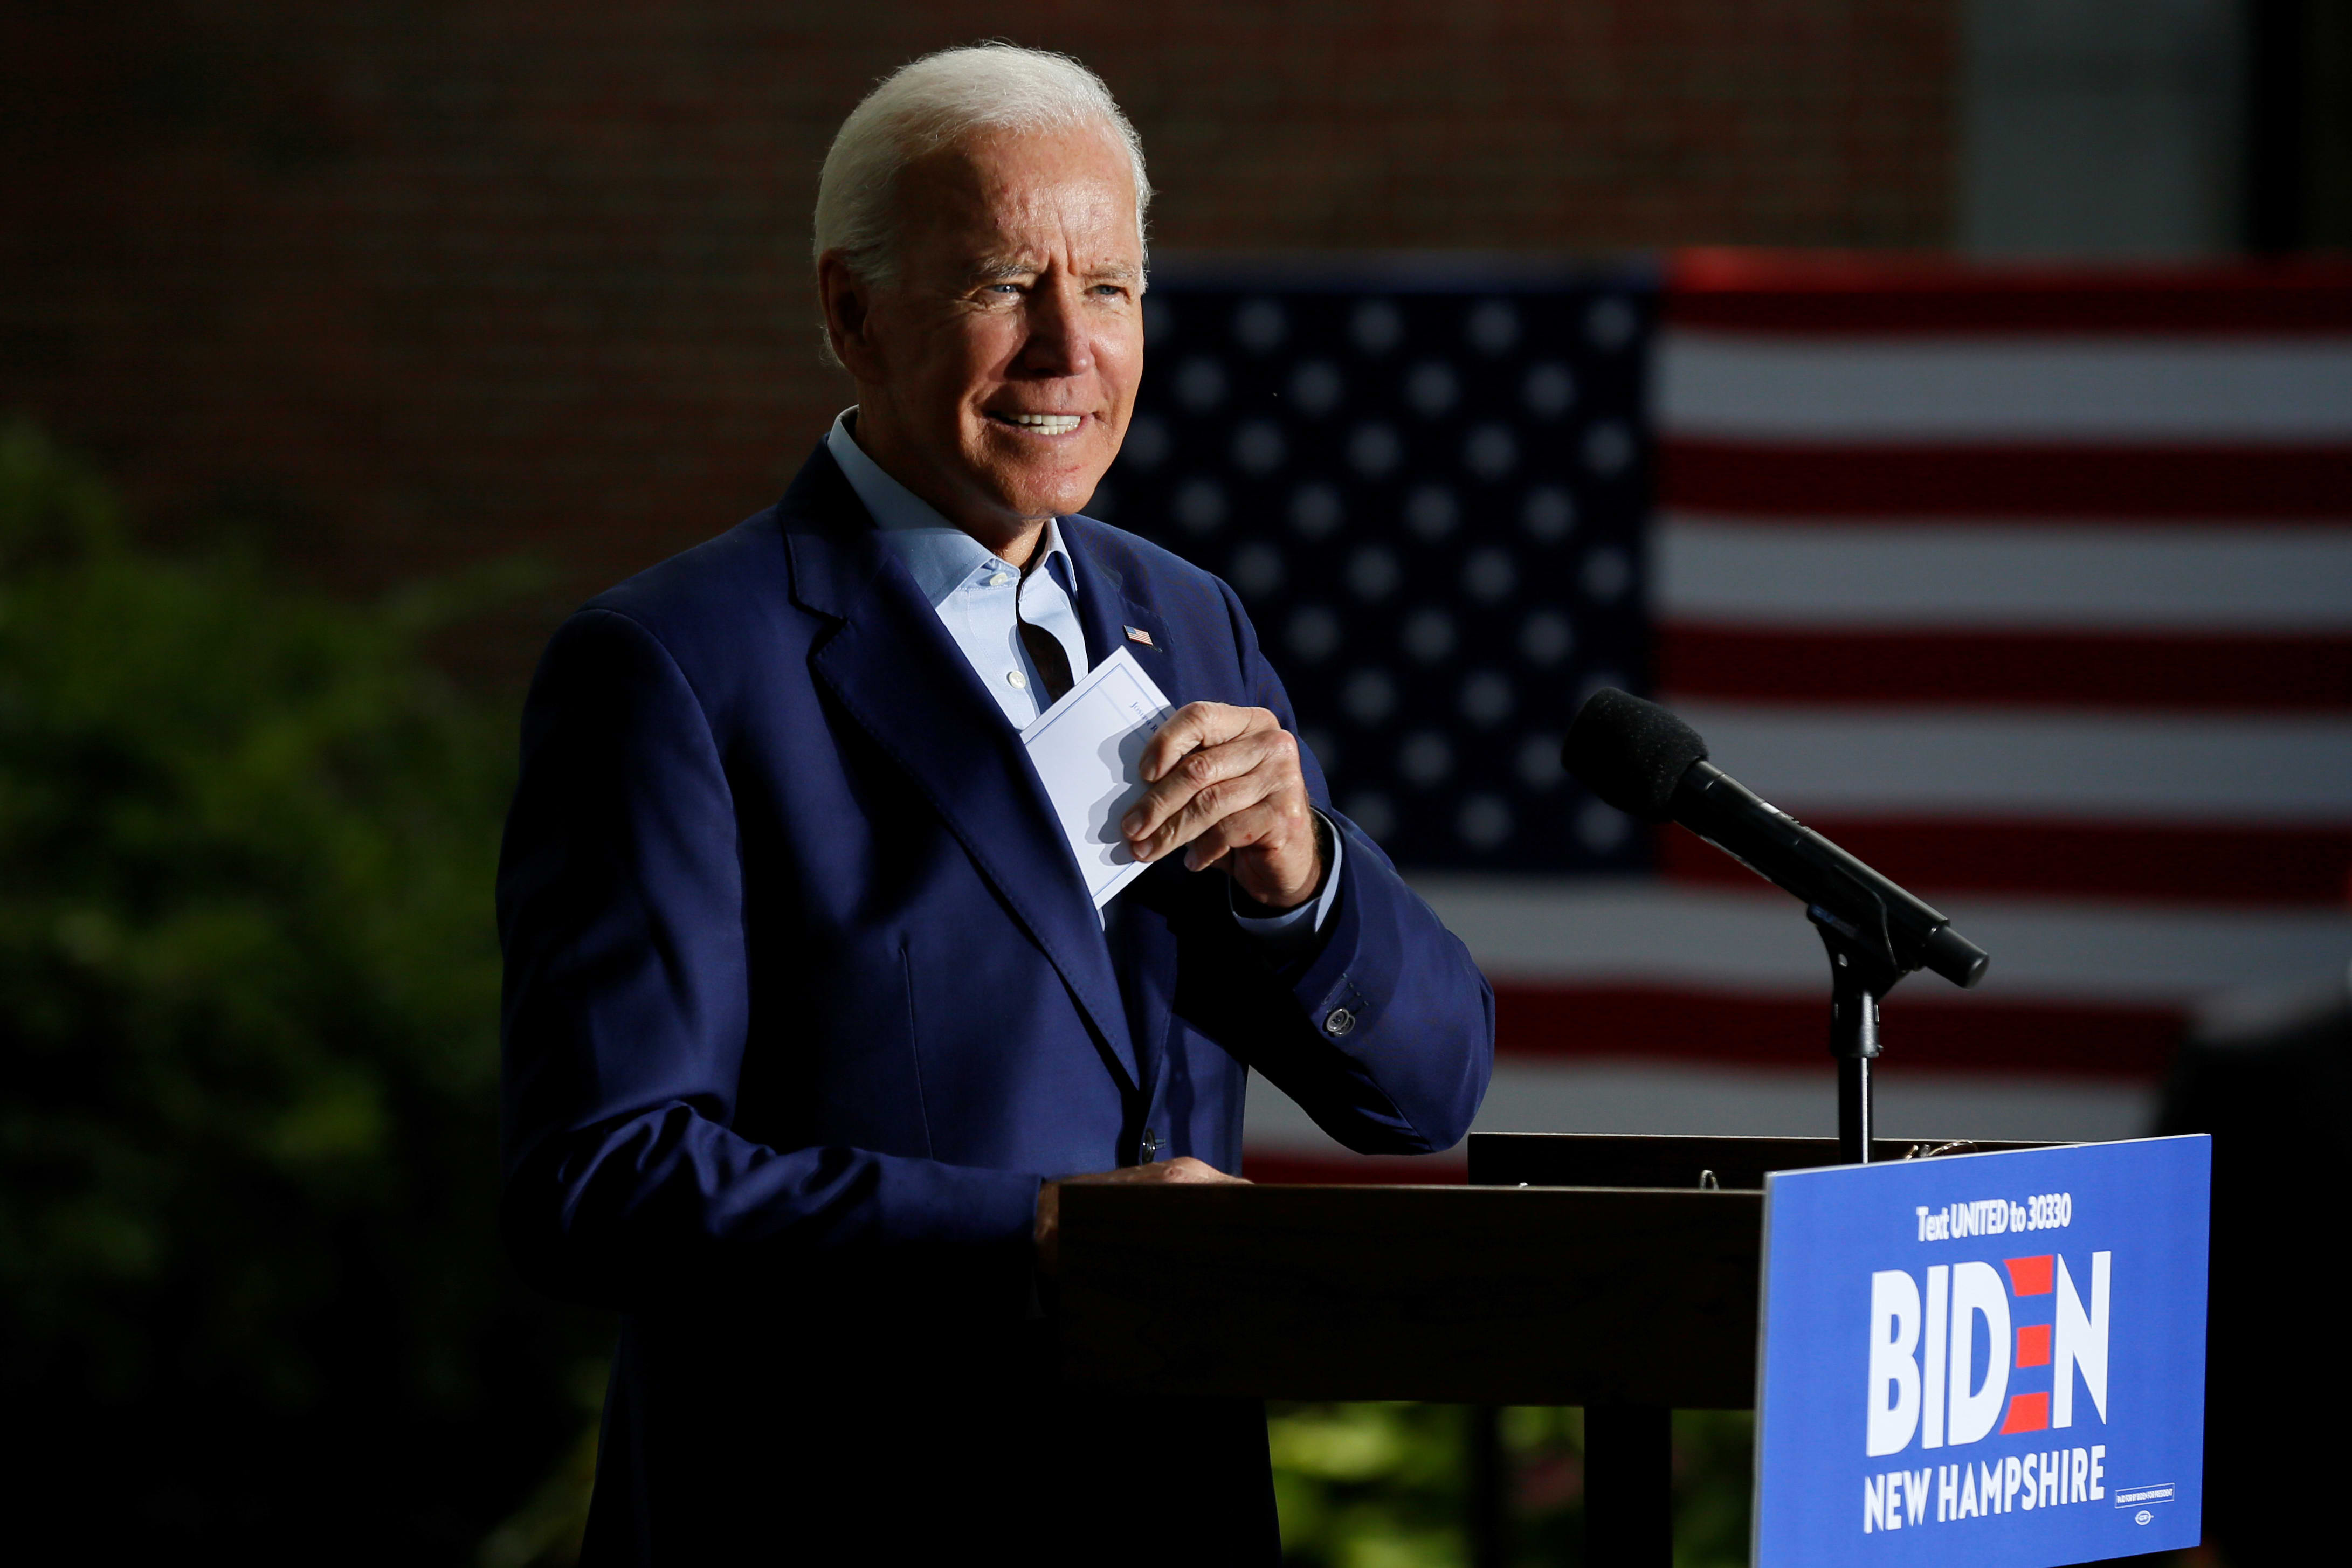 At campaign stop, Biden hints at his plan to address student debt and rising tuition